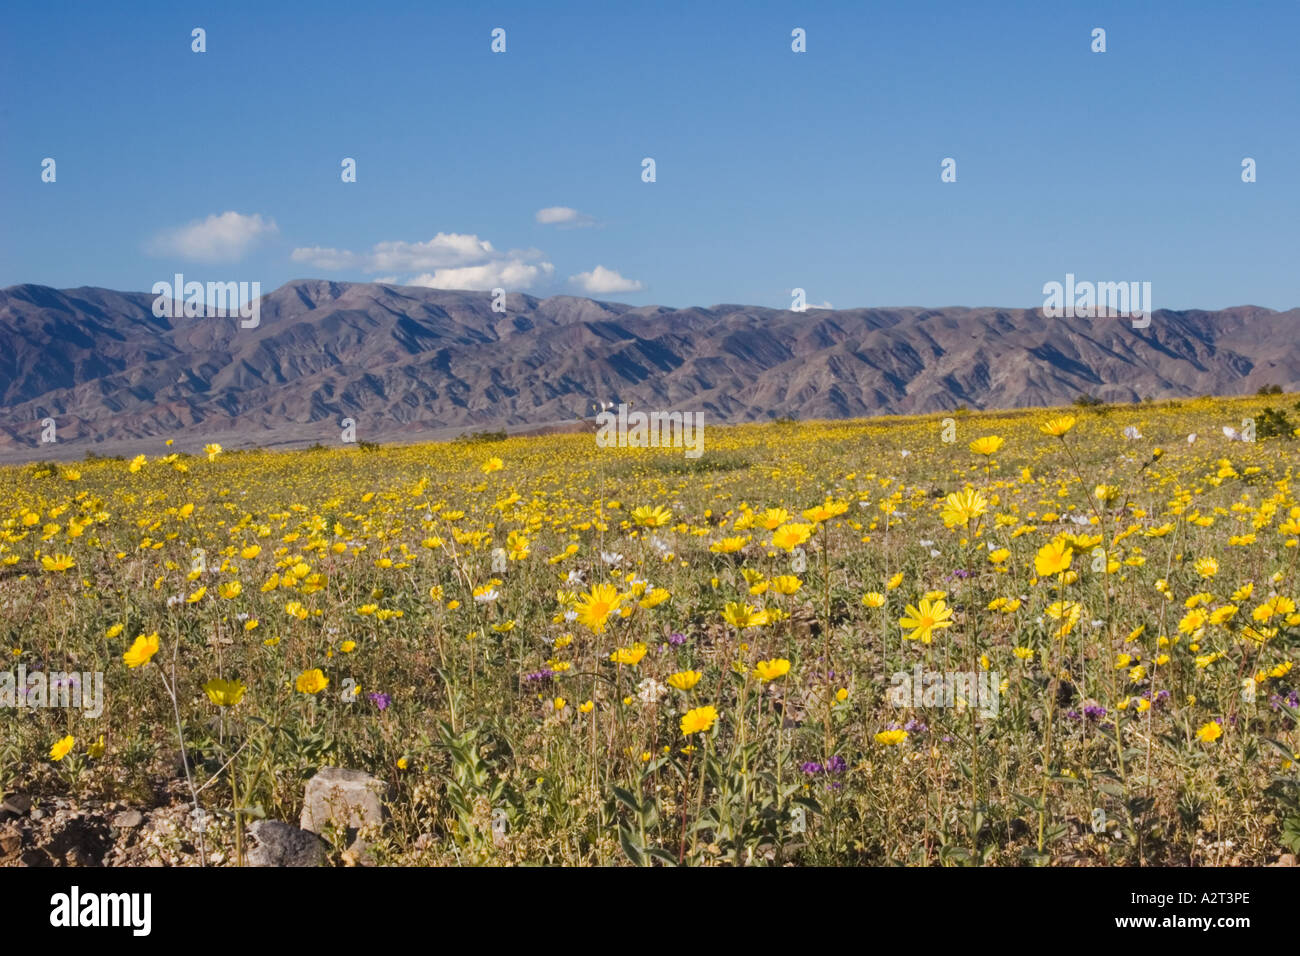 Fields of desert sunflower (Gerea canescens) with snow-capped peaks in the background, Death Valley National ParkStock Photo